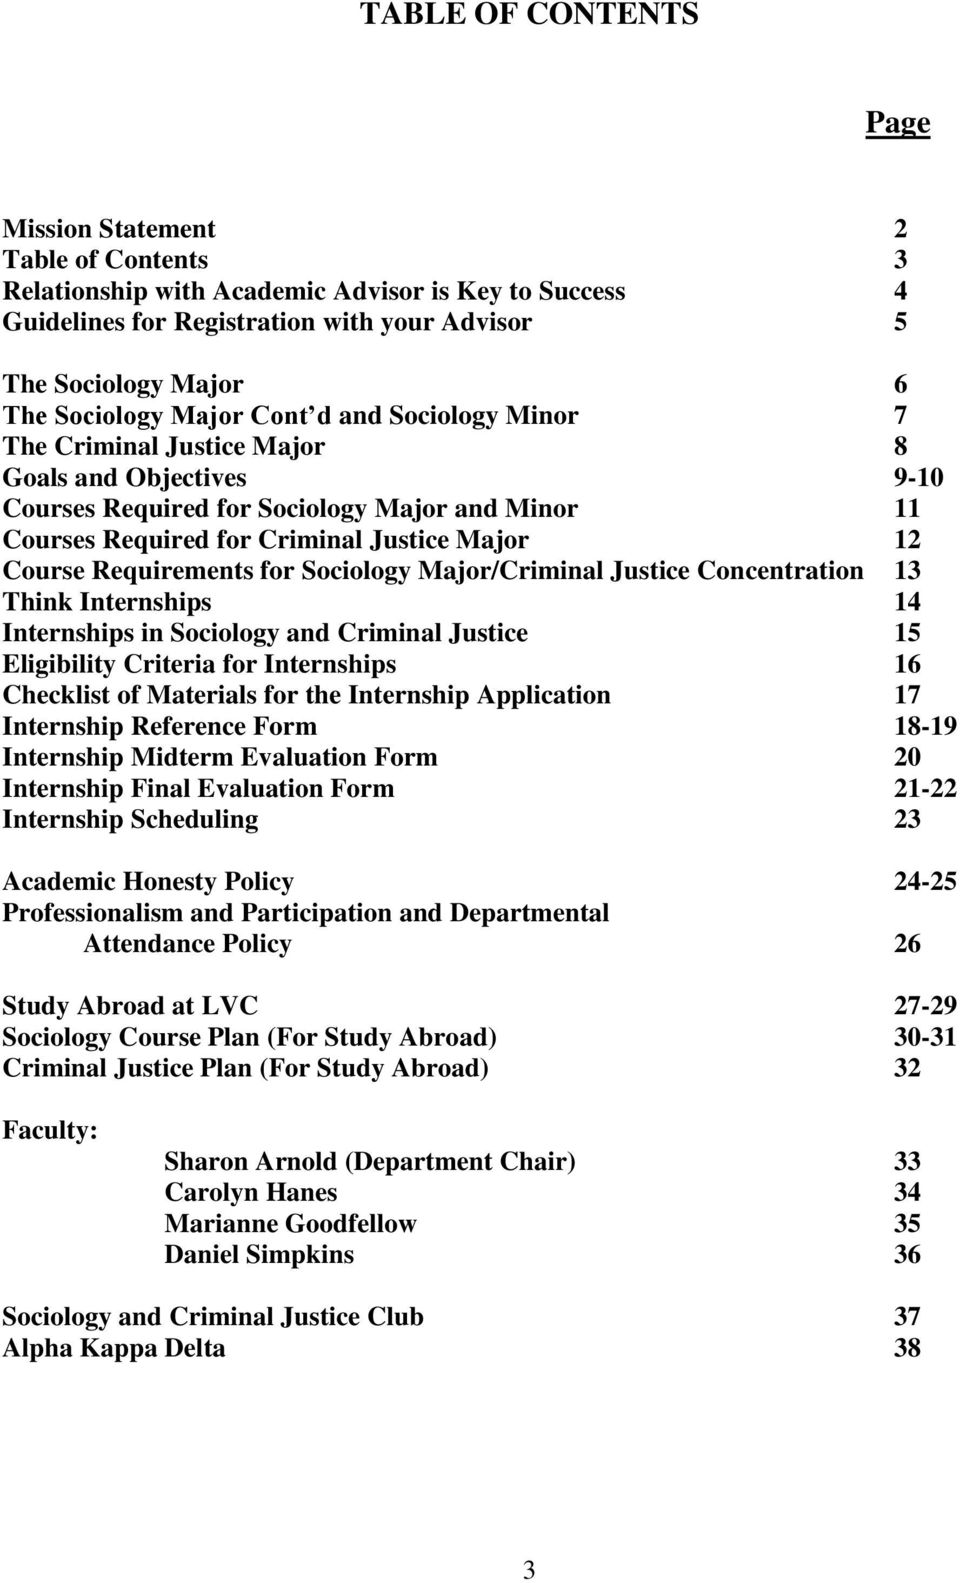 Course Requirements for Sociology Major/Criminal Justice Concentration 13 Think Internships 14 Internships in Sociology and Criminal Justice 15 Eligibility Criteria for Internships 16 Checklist of